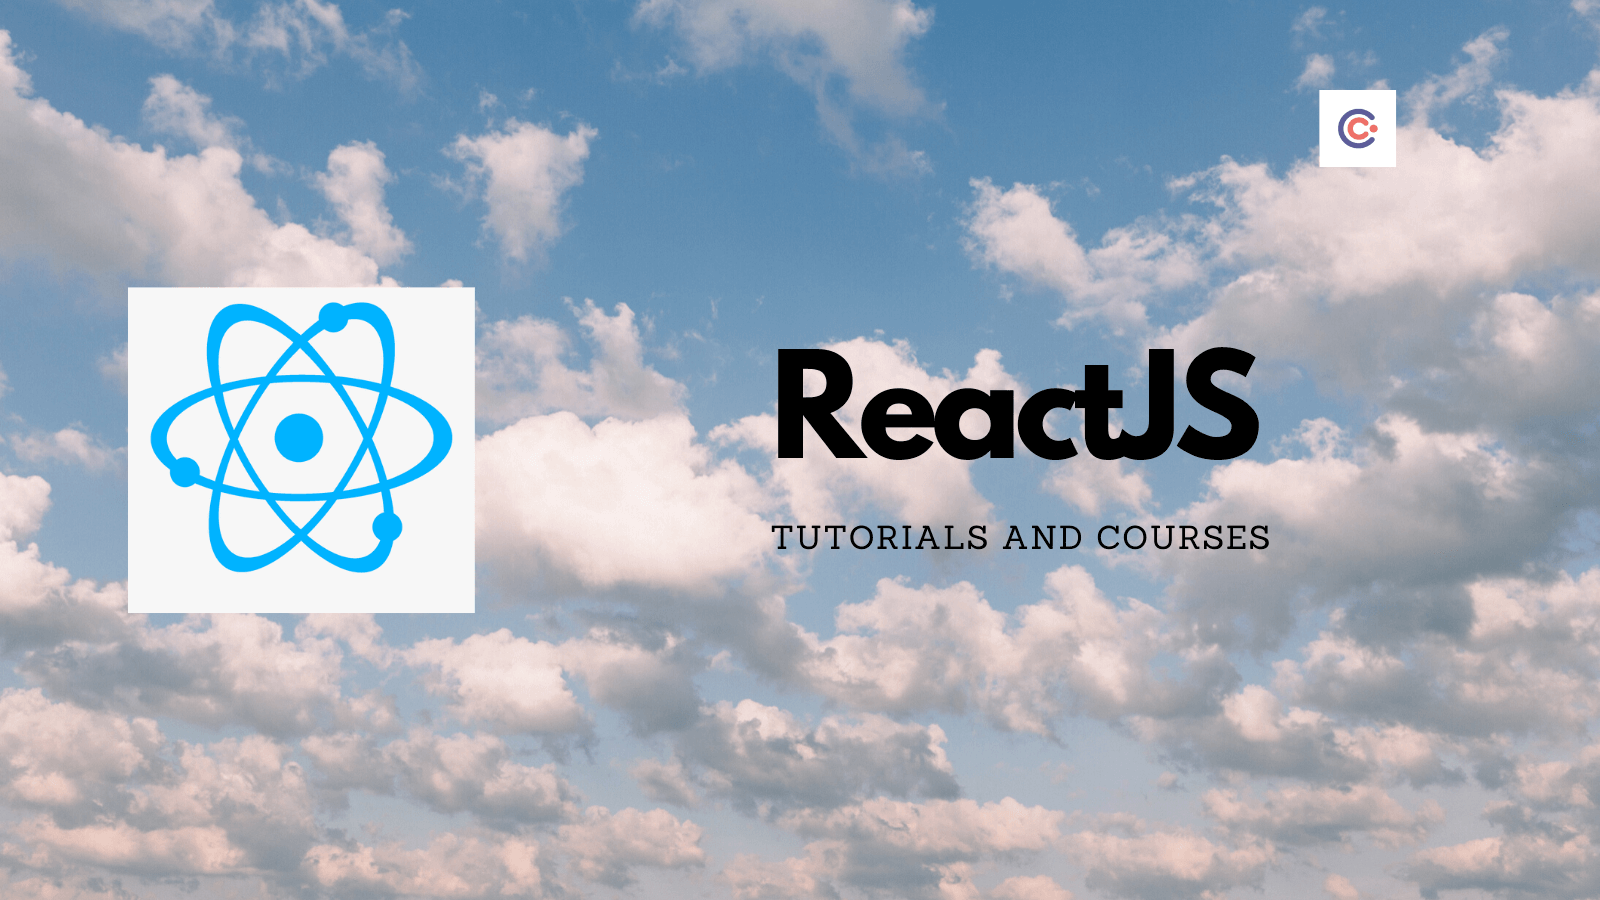 14 Best ReactJS Tutorials & Courses - Learn ReactJS Development Online